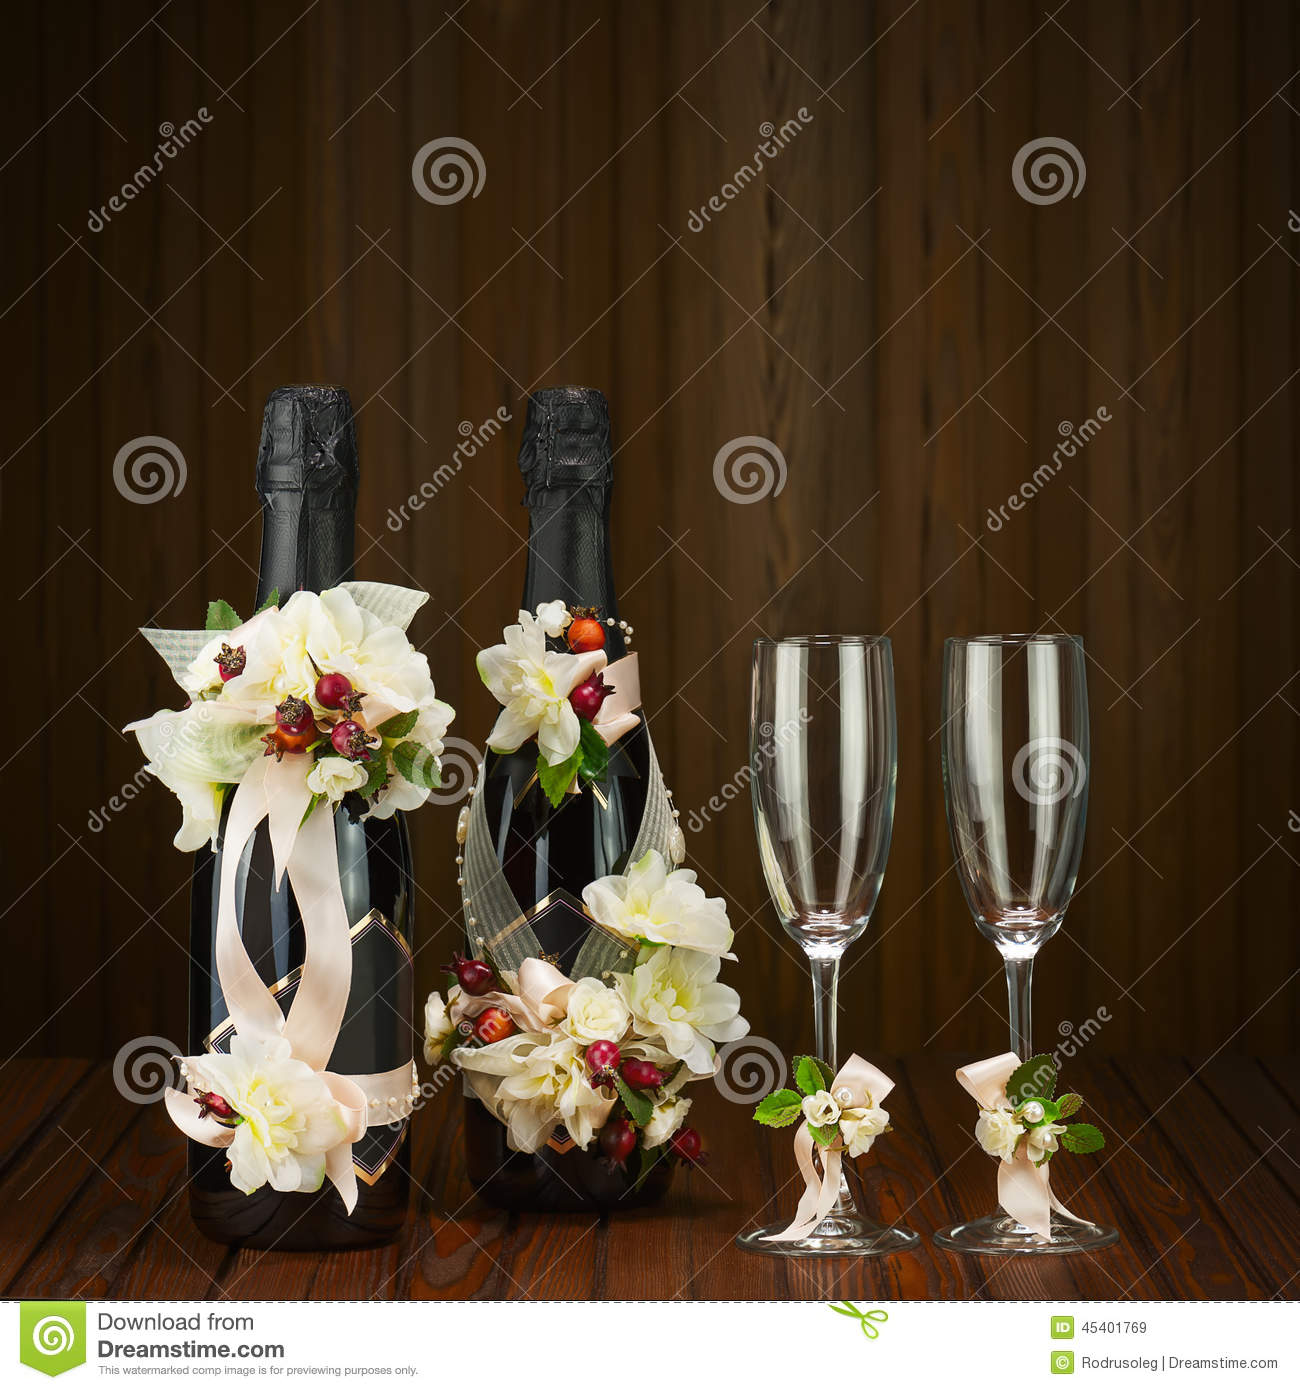 Champagne bottles with glass and wedding decoration of flower ar stock photo image 45401769 for Photo decoration